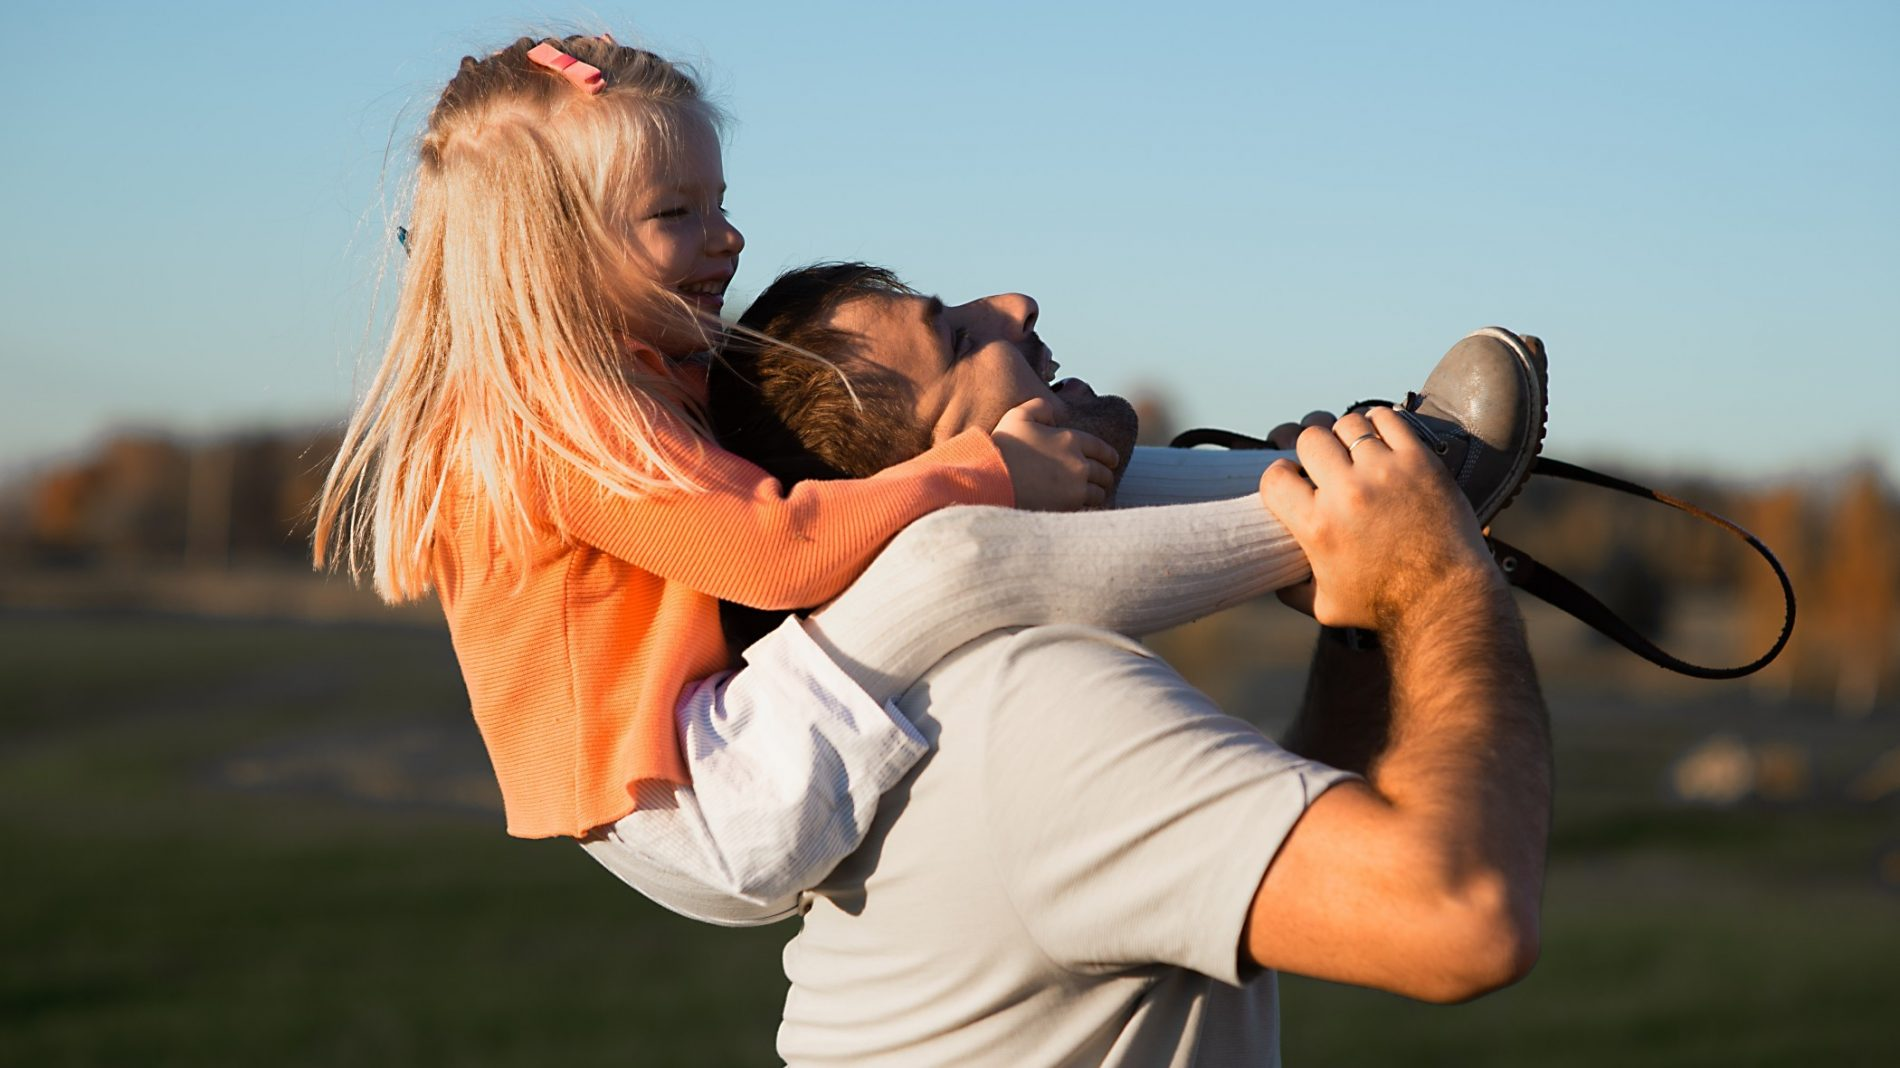 happy-fathers-day-child-girl-and-dad-playing-on-nature-in-summer-field-portrait-fun-family-family-fun_t20_2wlV00